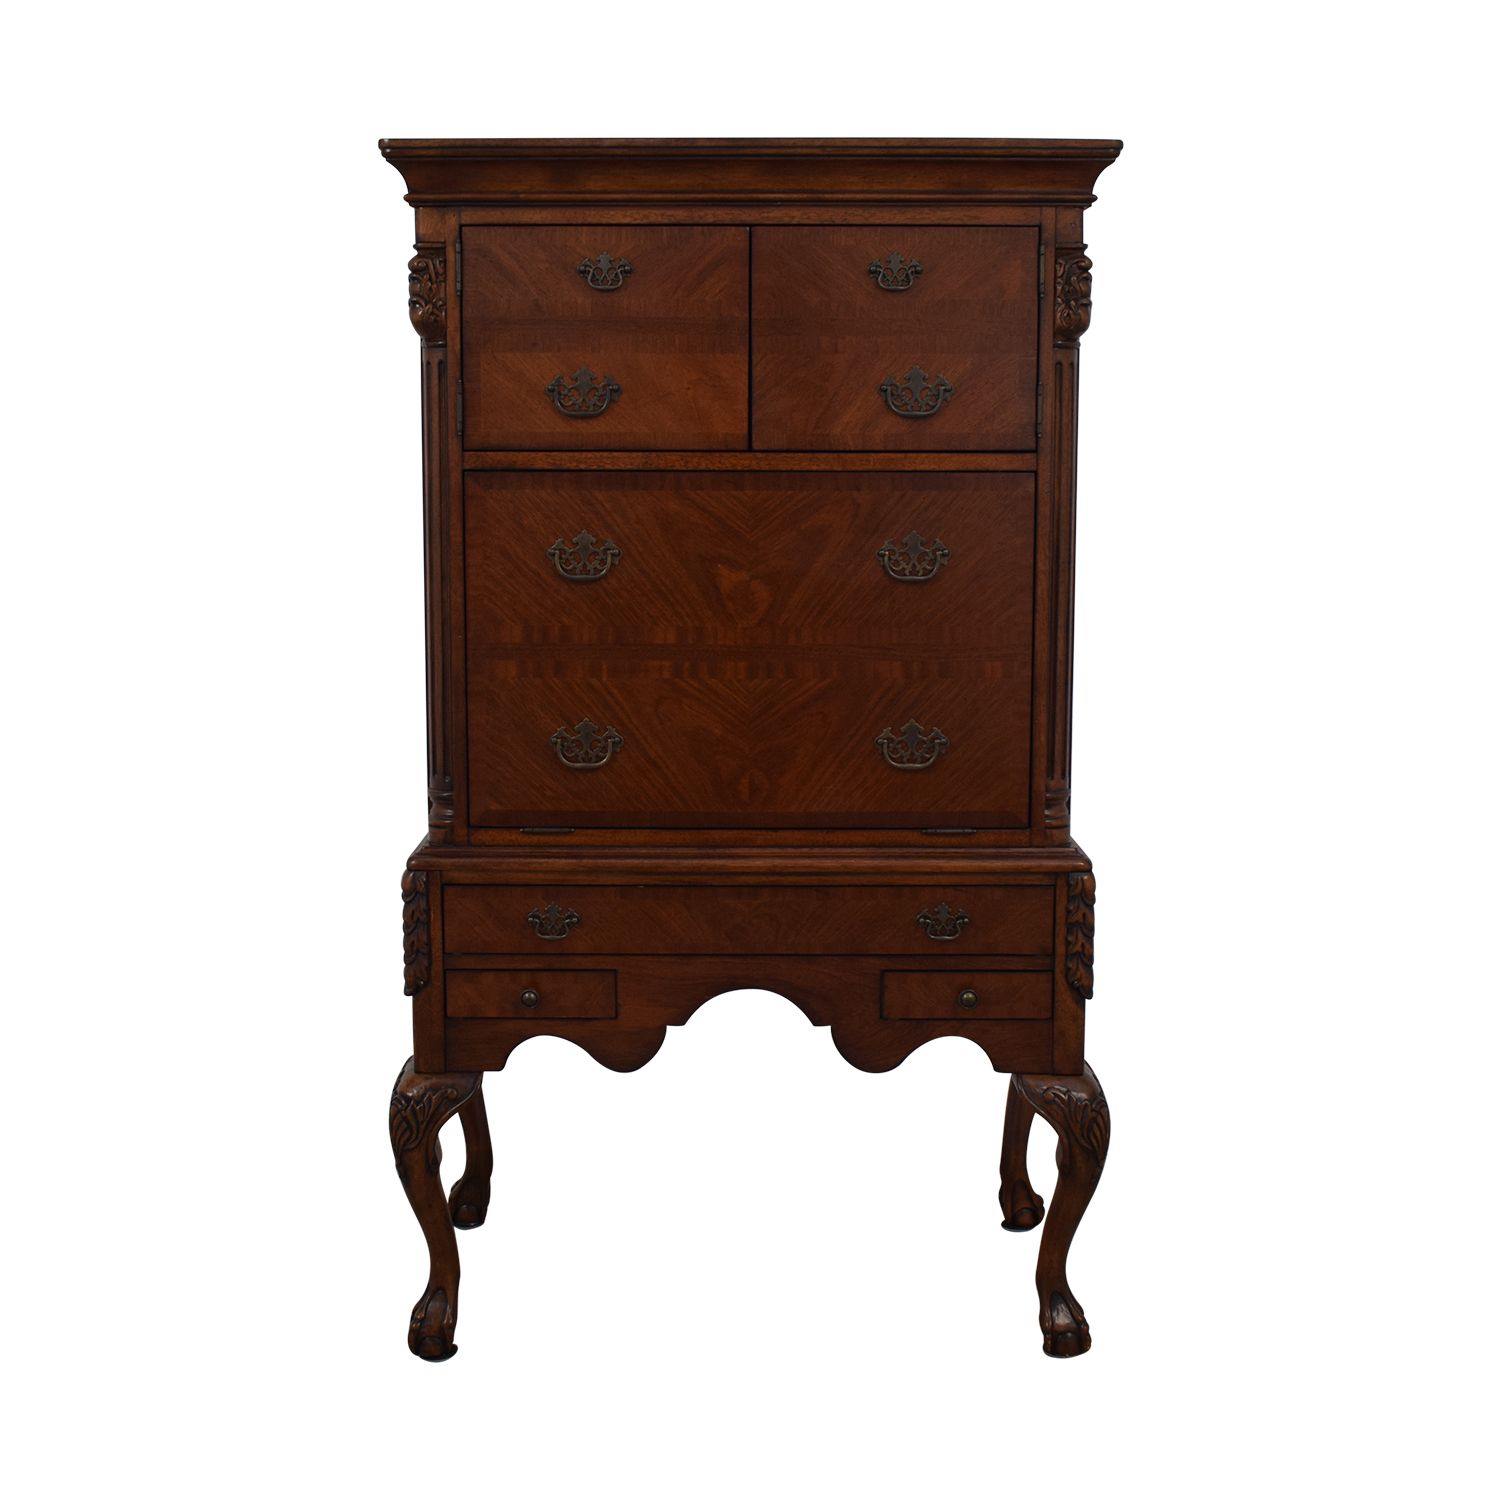 buy Hekman Furniture Hekman Furniture Wine Cabinet online